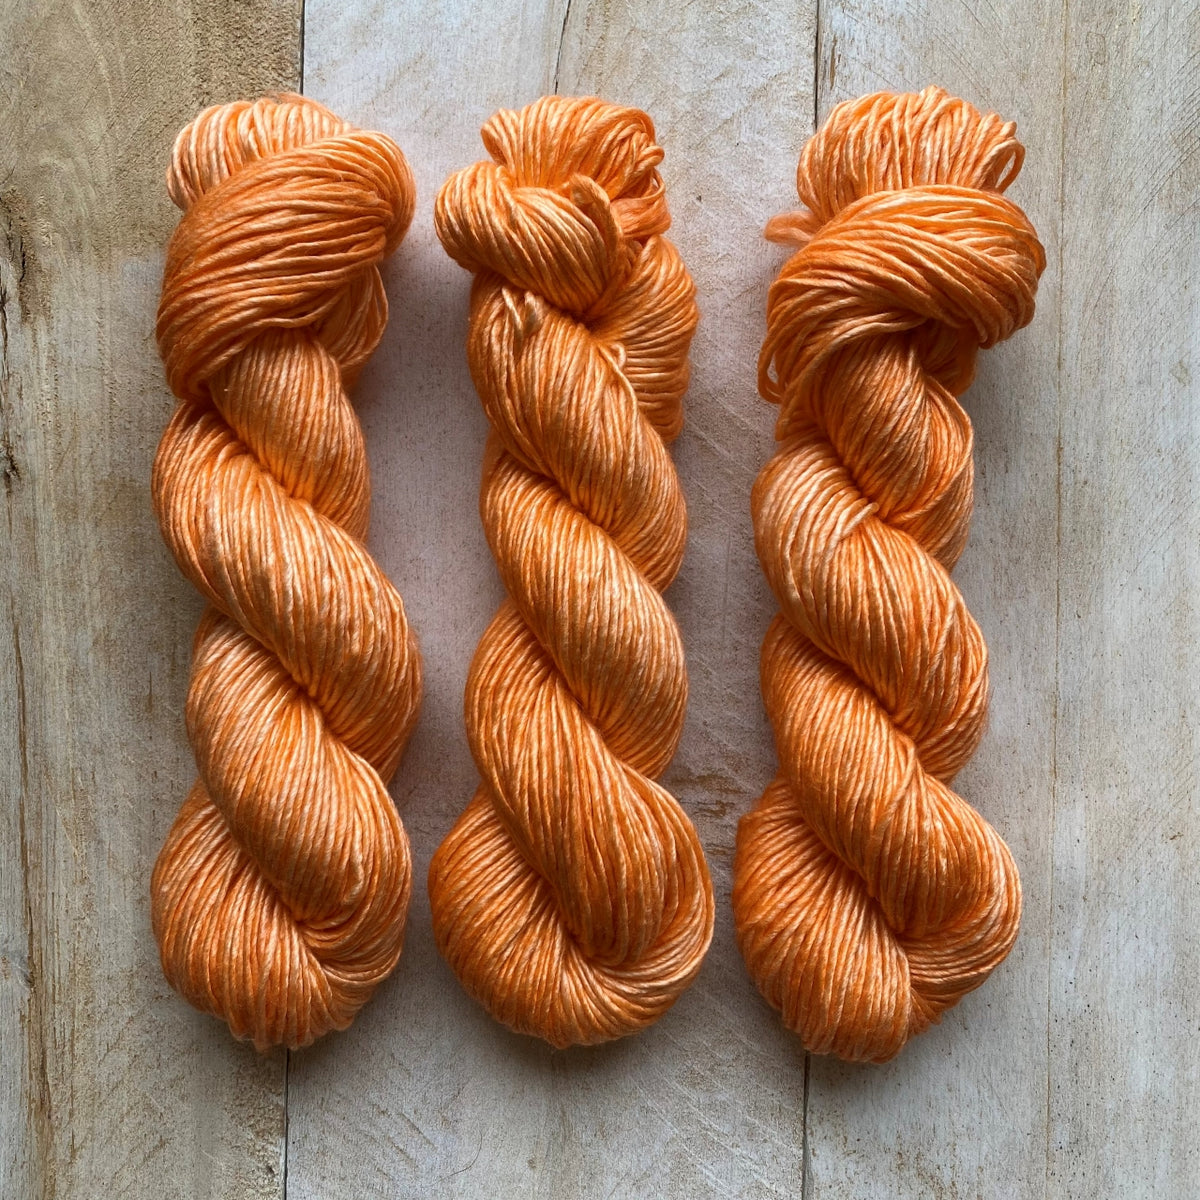 Albus - Merino and Silk yarn CANTALOUP